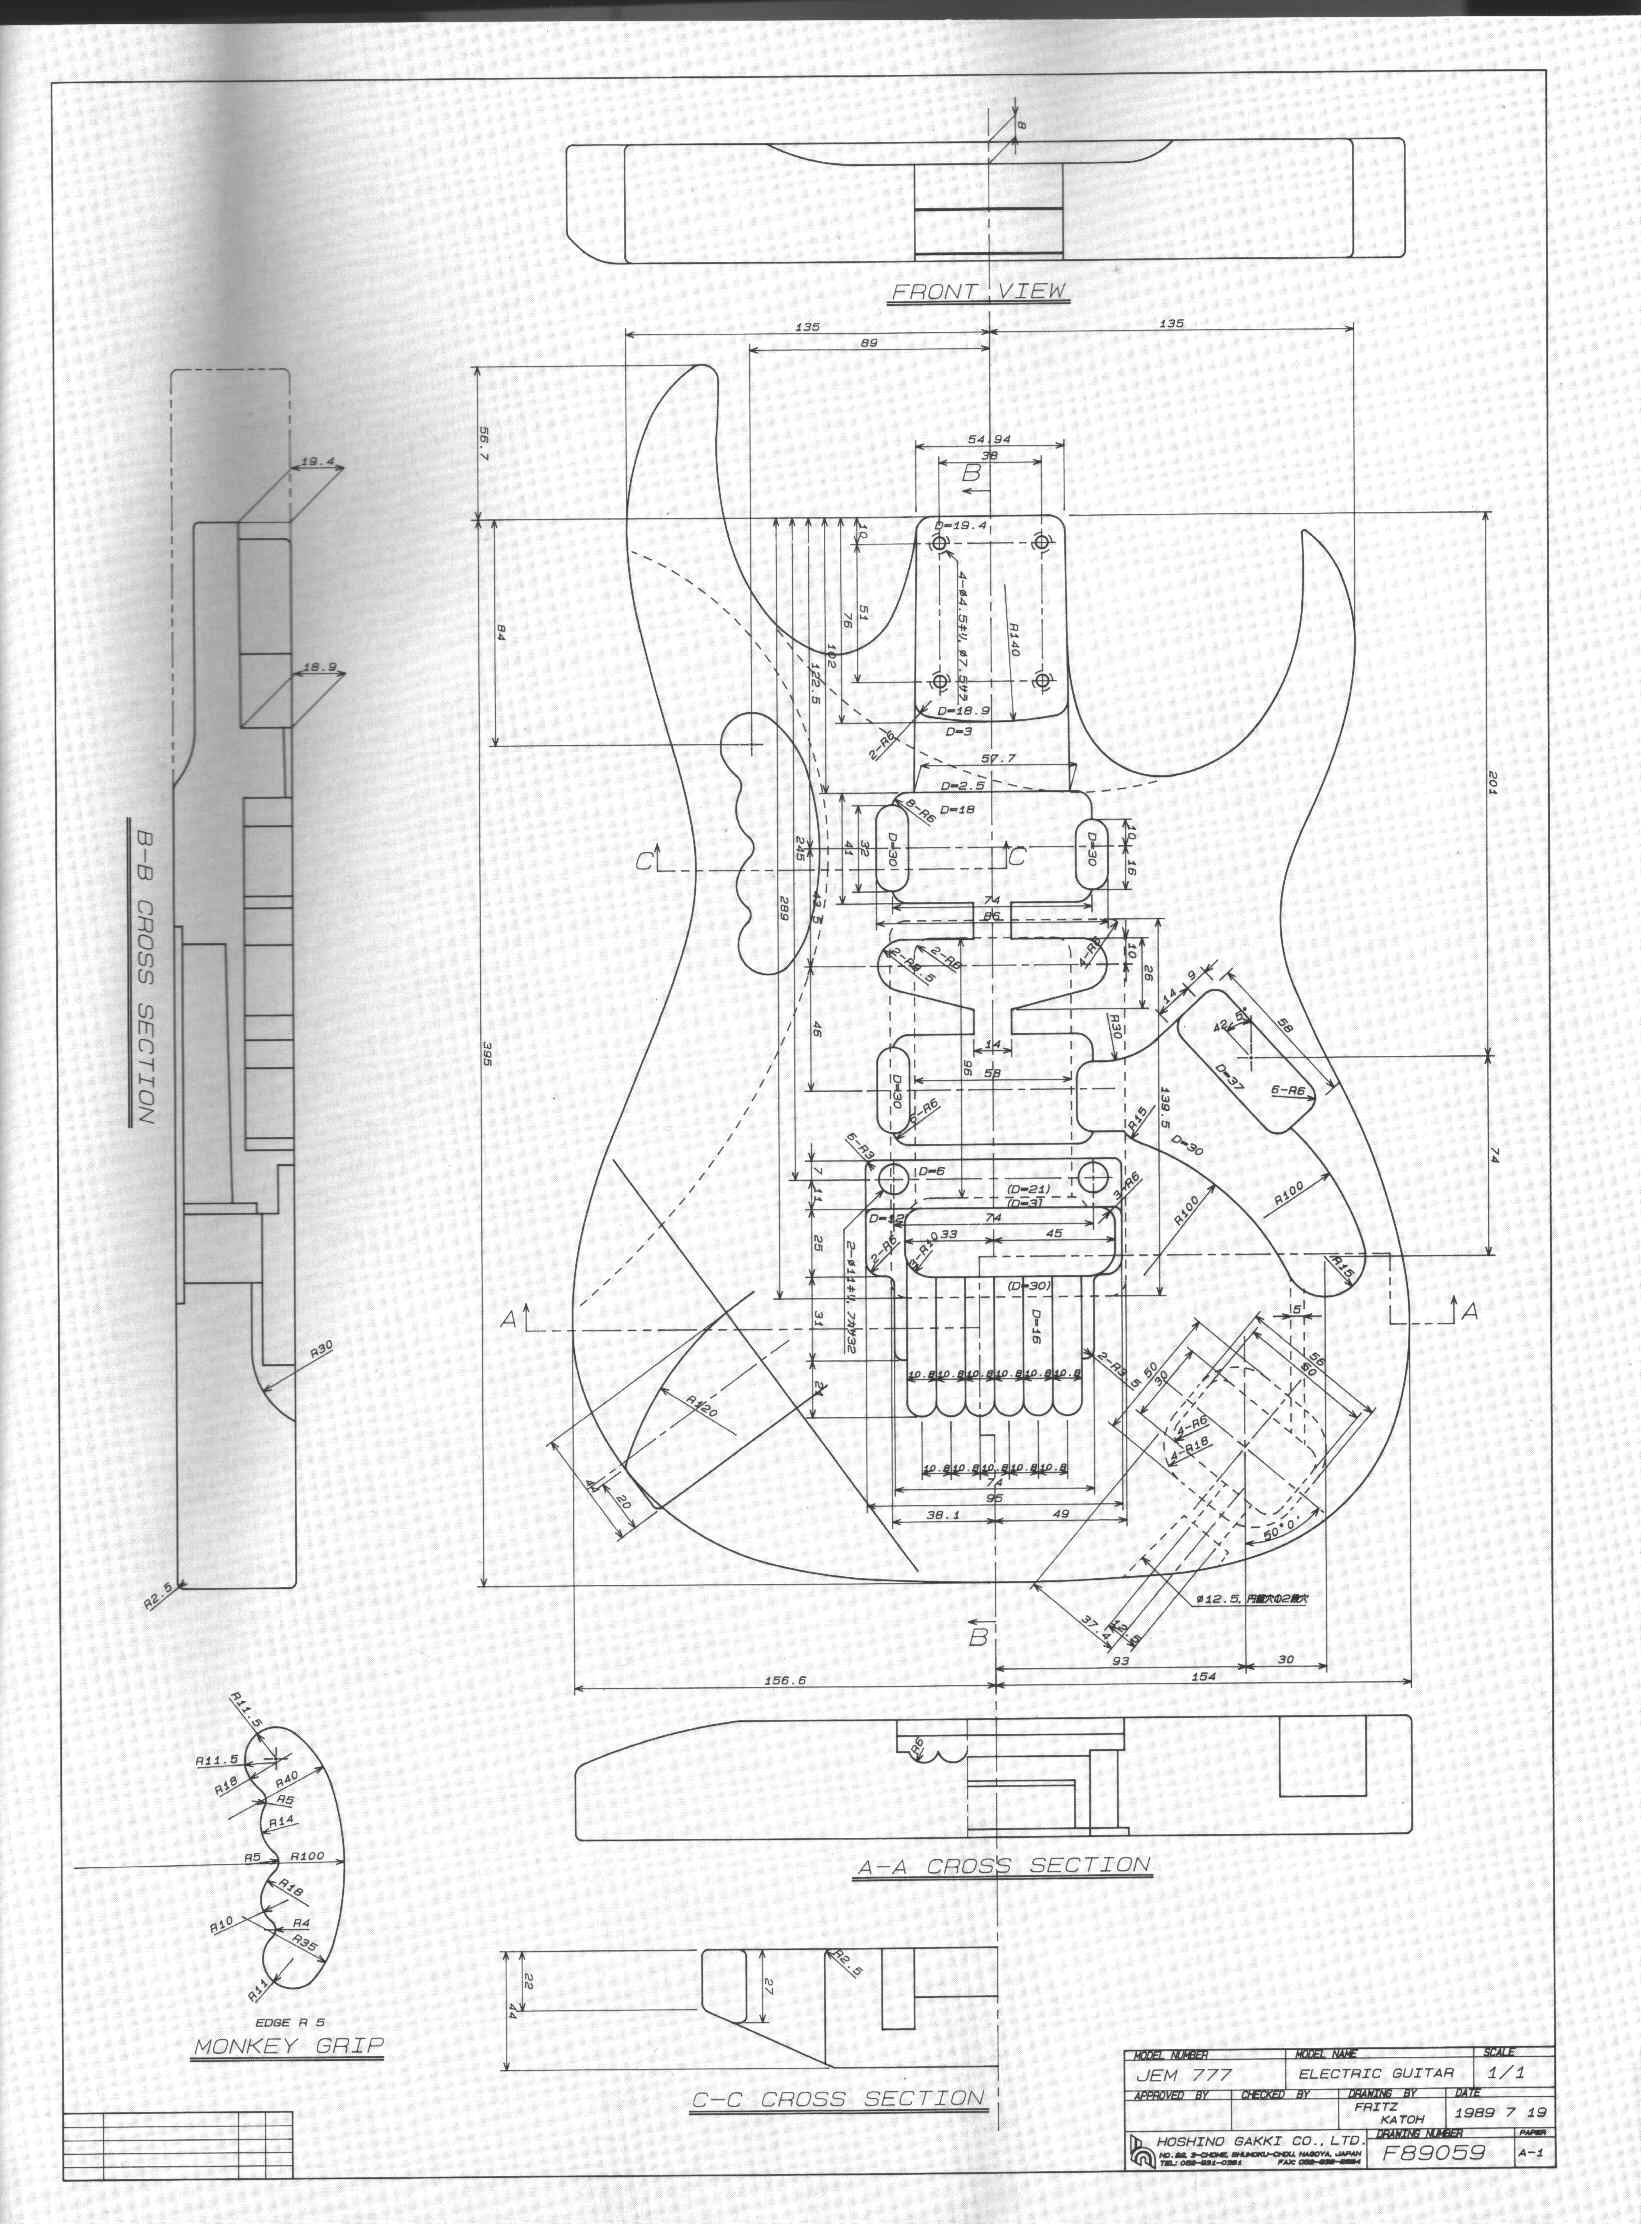 Les Paul Body Template Printable